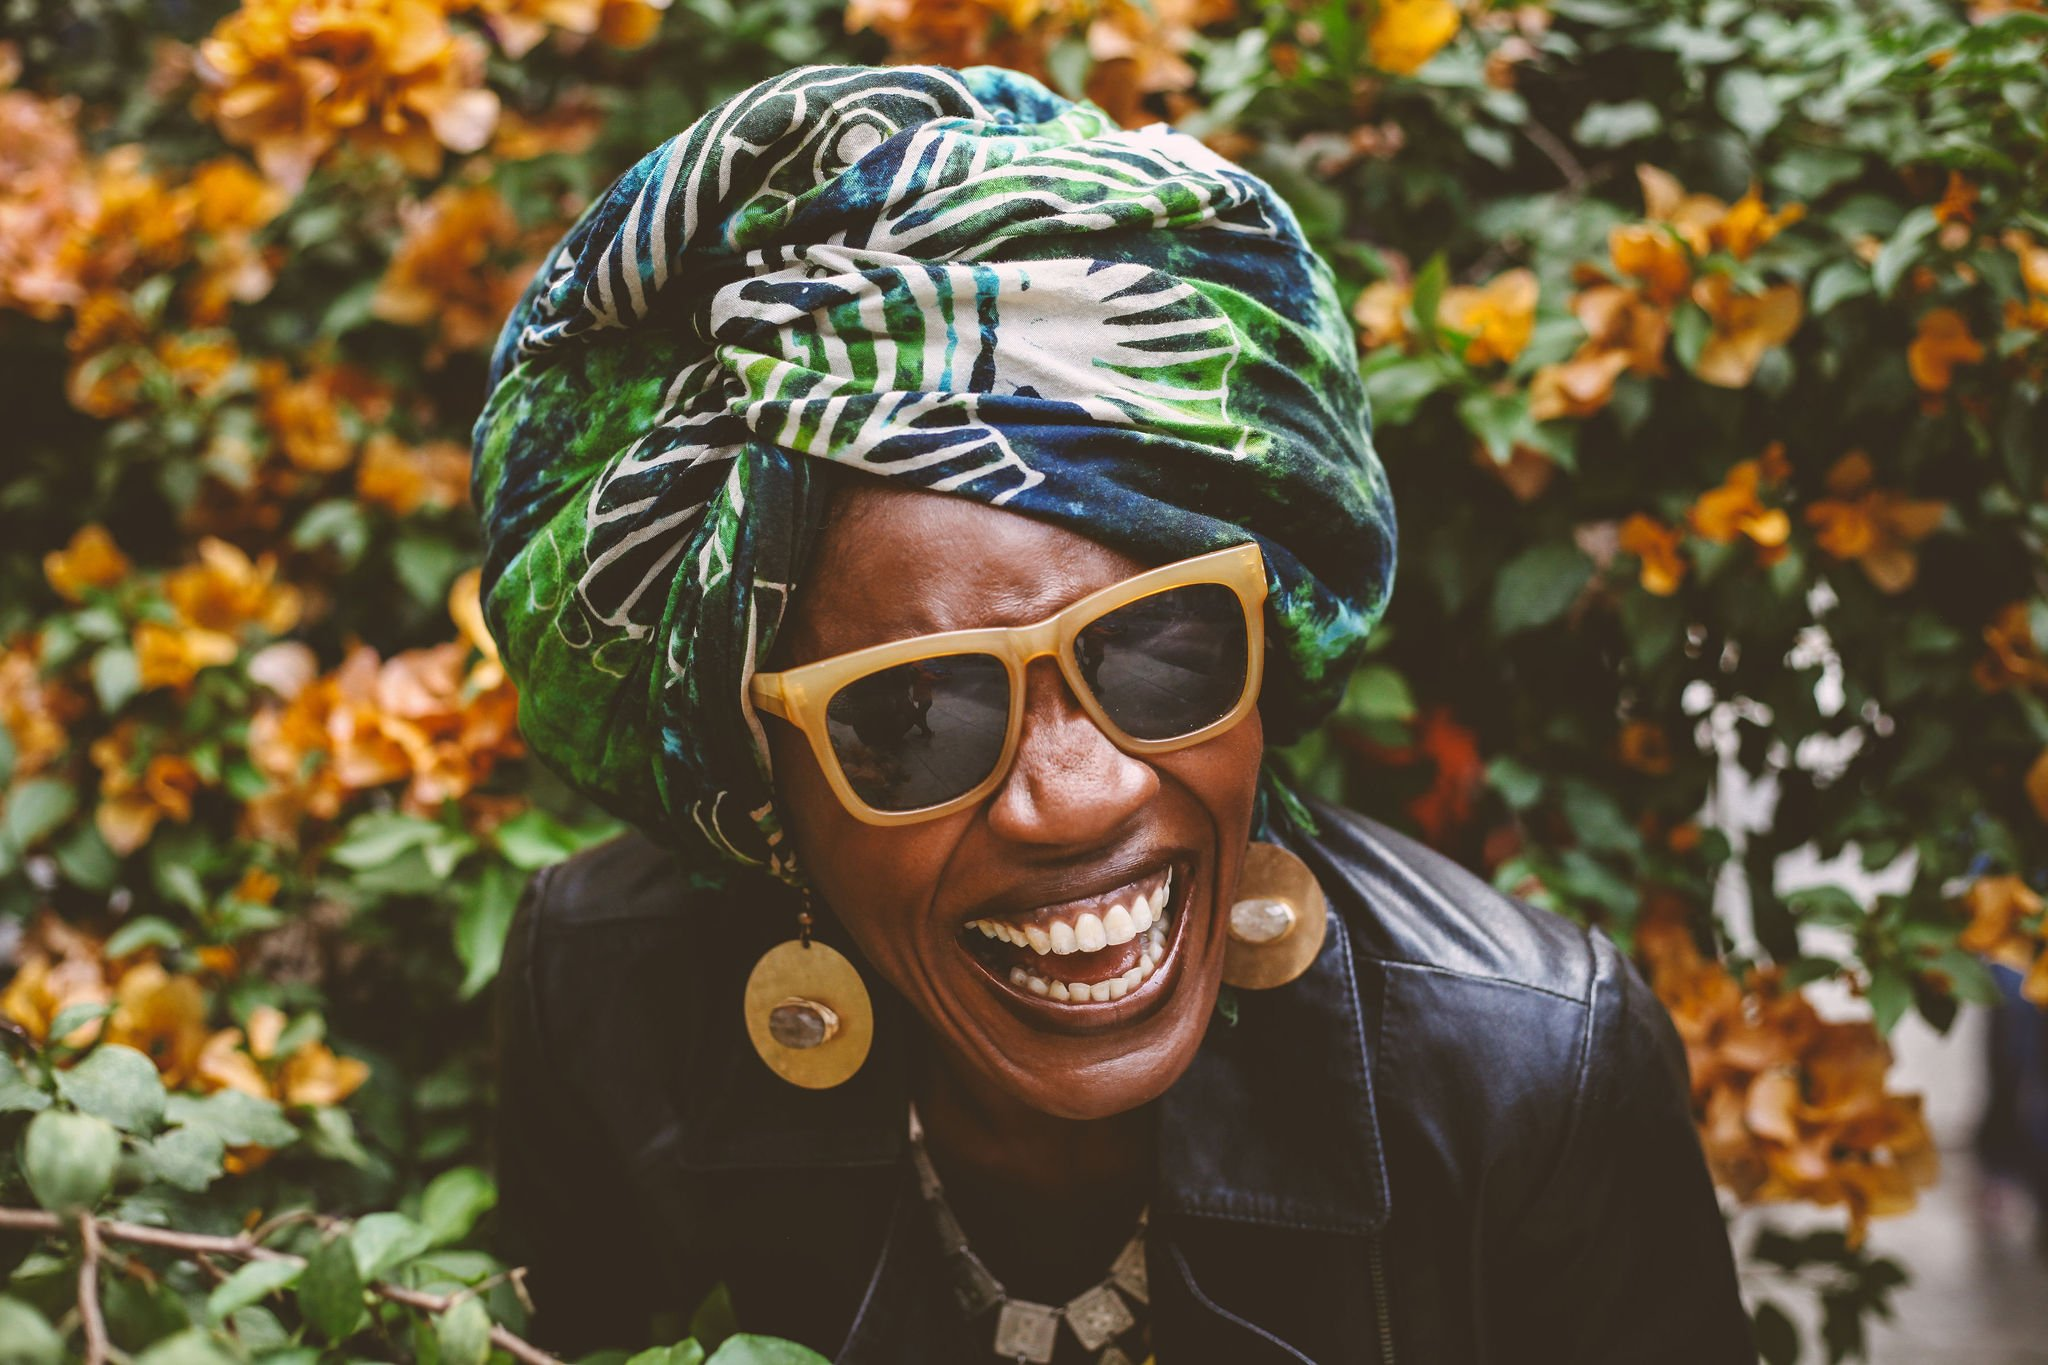 Image of Uchechi Kalu in front of orange bougainvillea. She is wearing orange-framed sunglasses and doubled over with laughter.